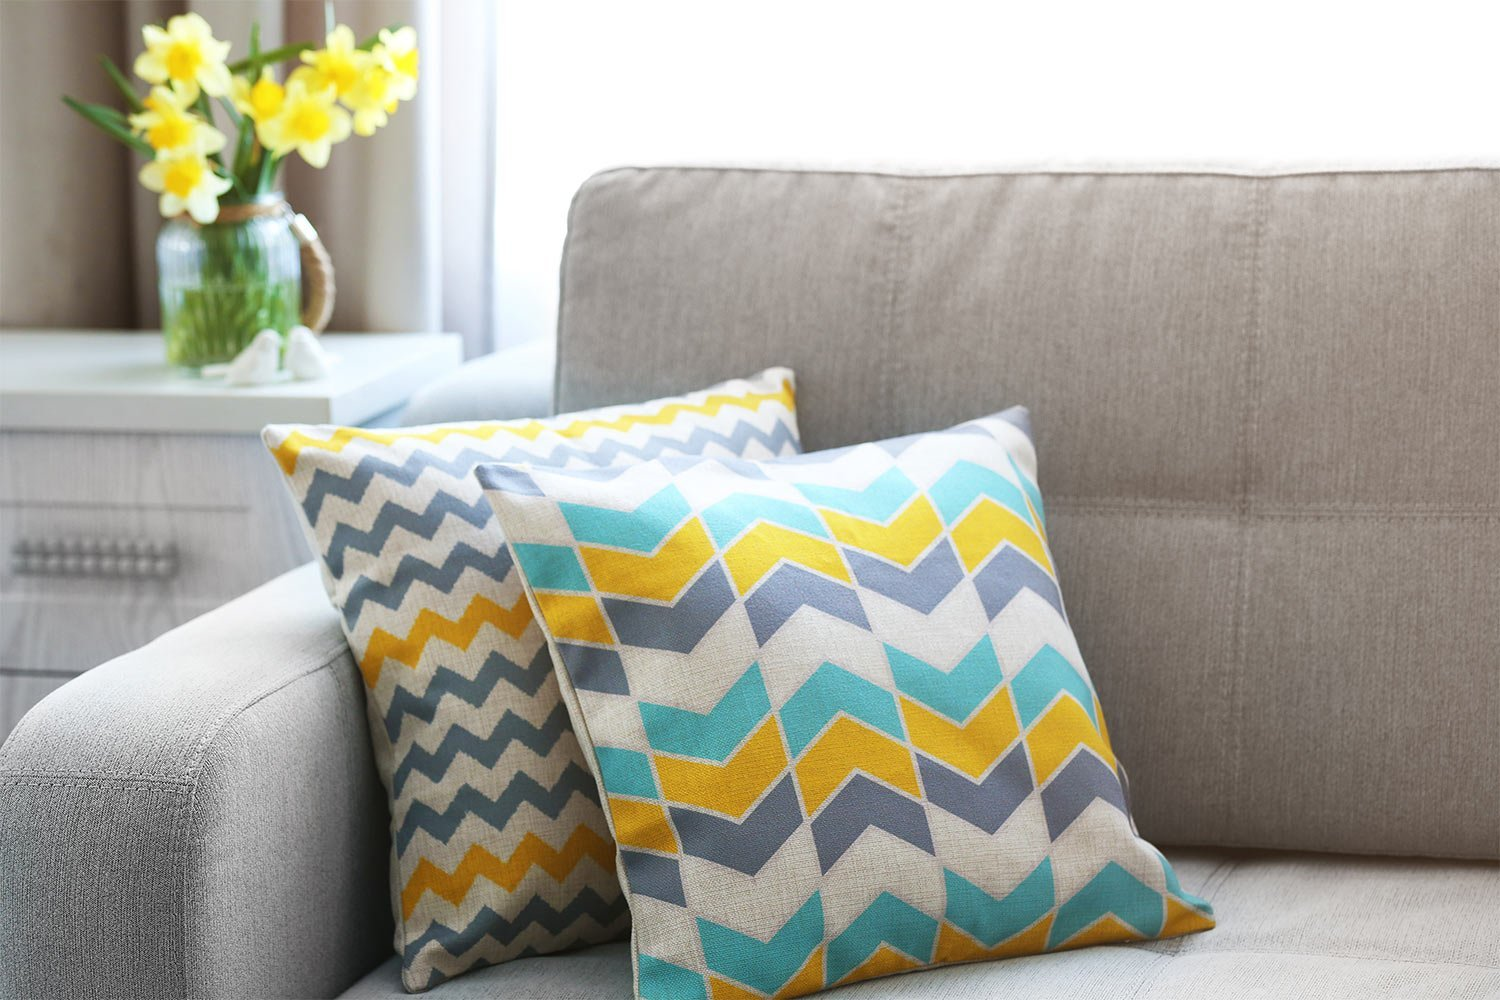 5-decorative_pillows_1.jpg